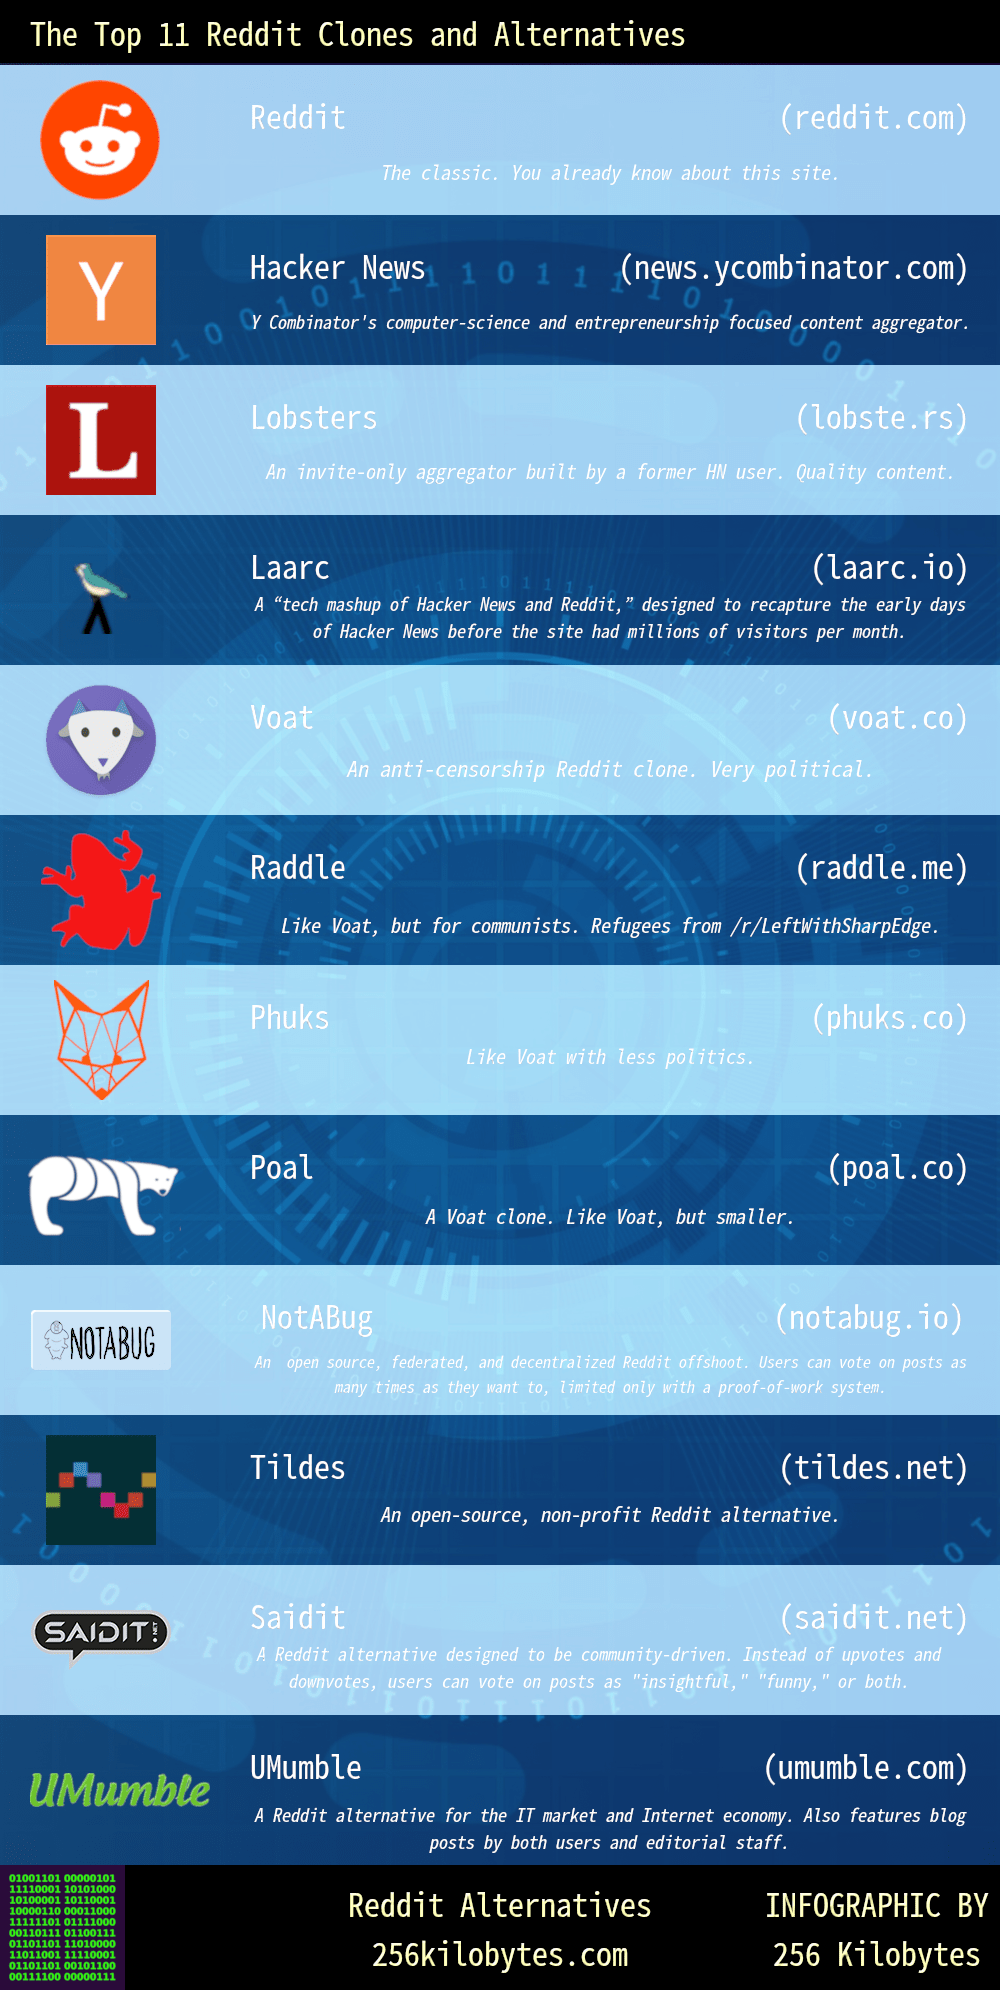 Infographic - The Top 11 Reddit Alternatives and Clones